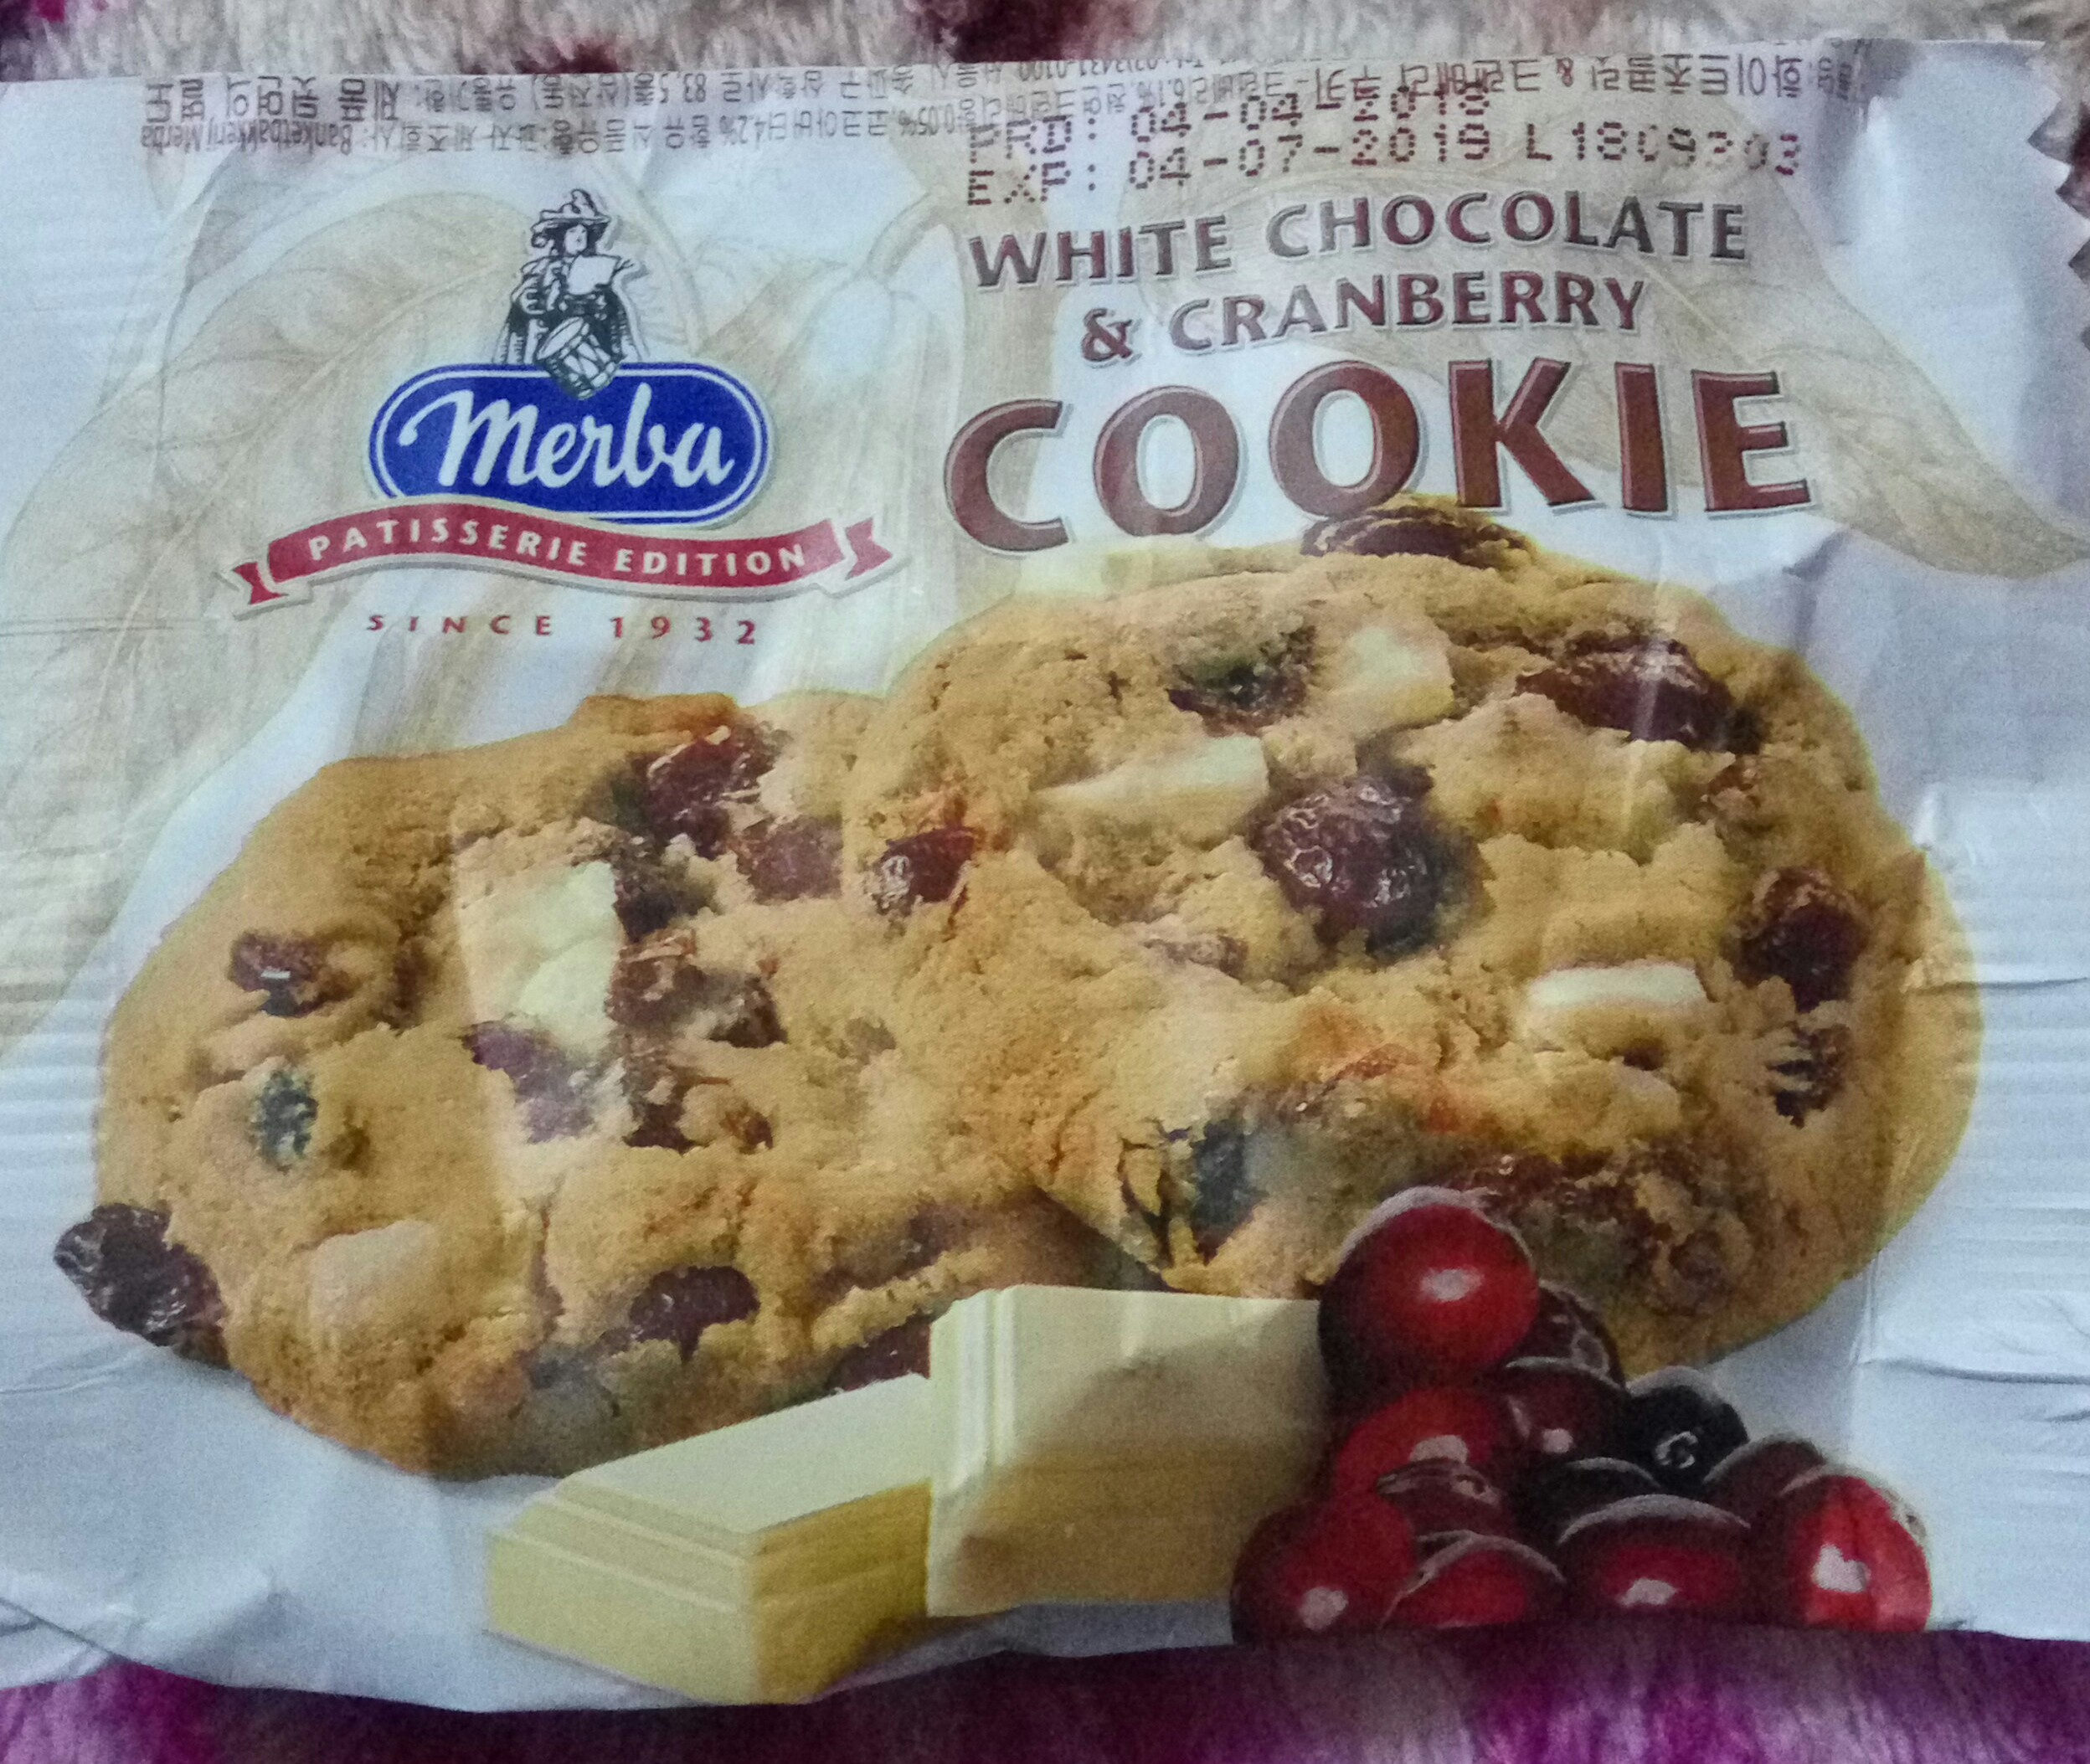 white chocolate & cranberry cookie - Product - en